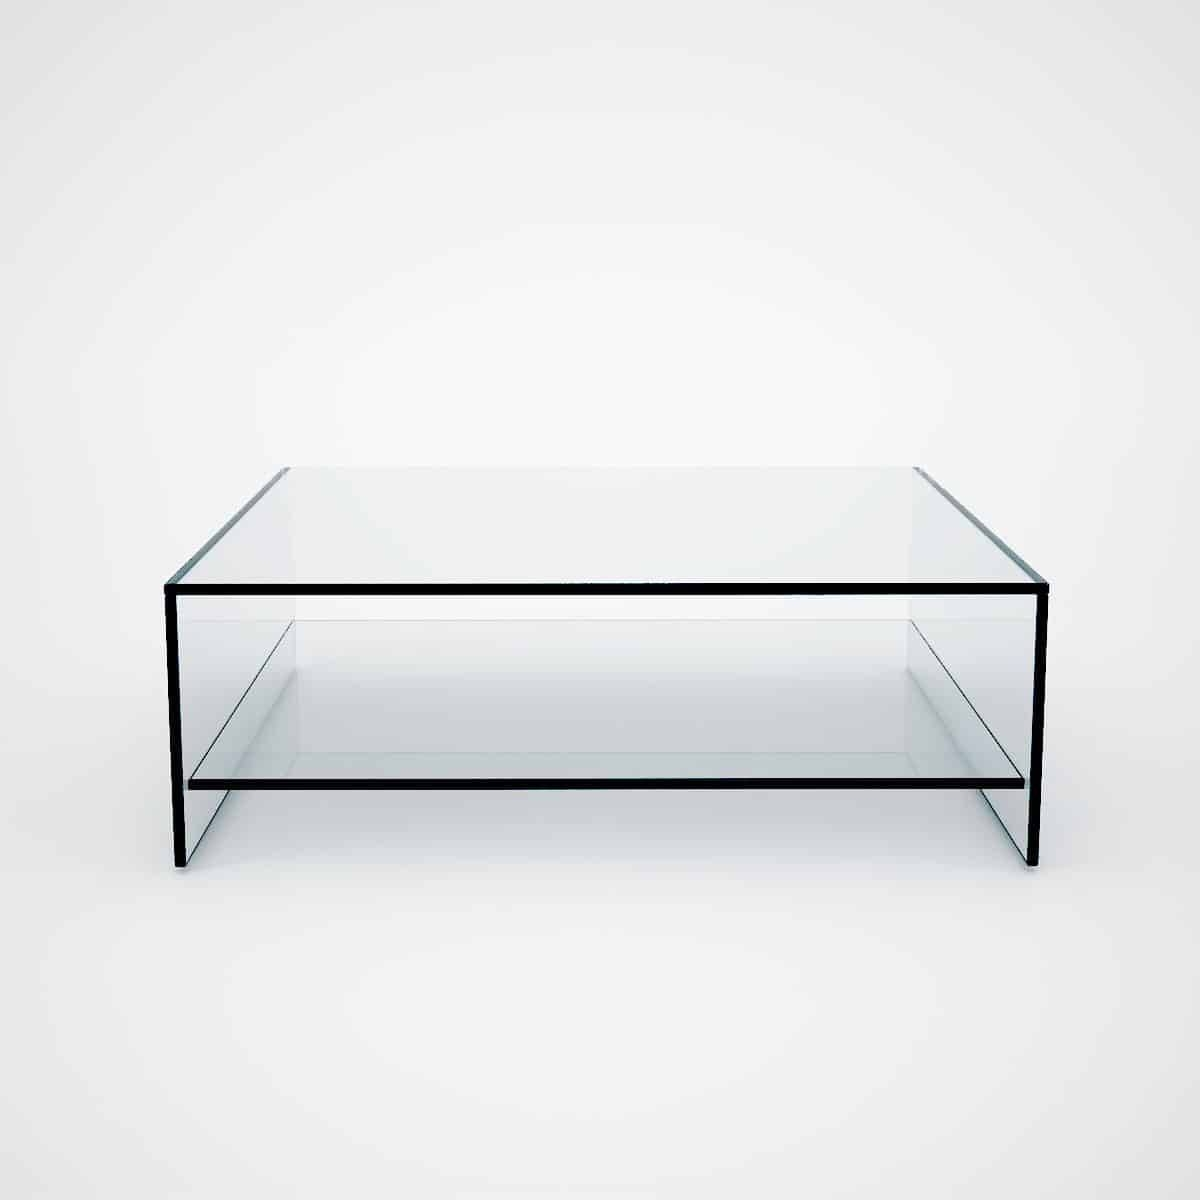 Judd - Square Glass Coffee Table With Shelf - Klarity - Glass throughout Glass Coffee Table With Shelf (Image 11 of 15)